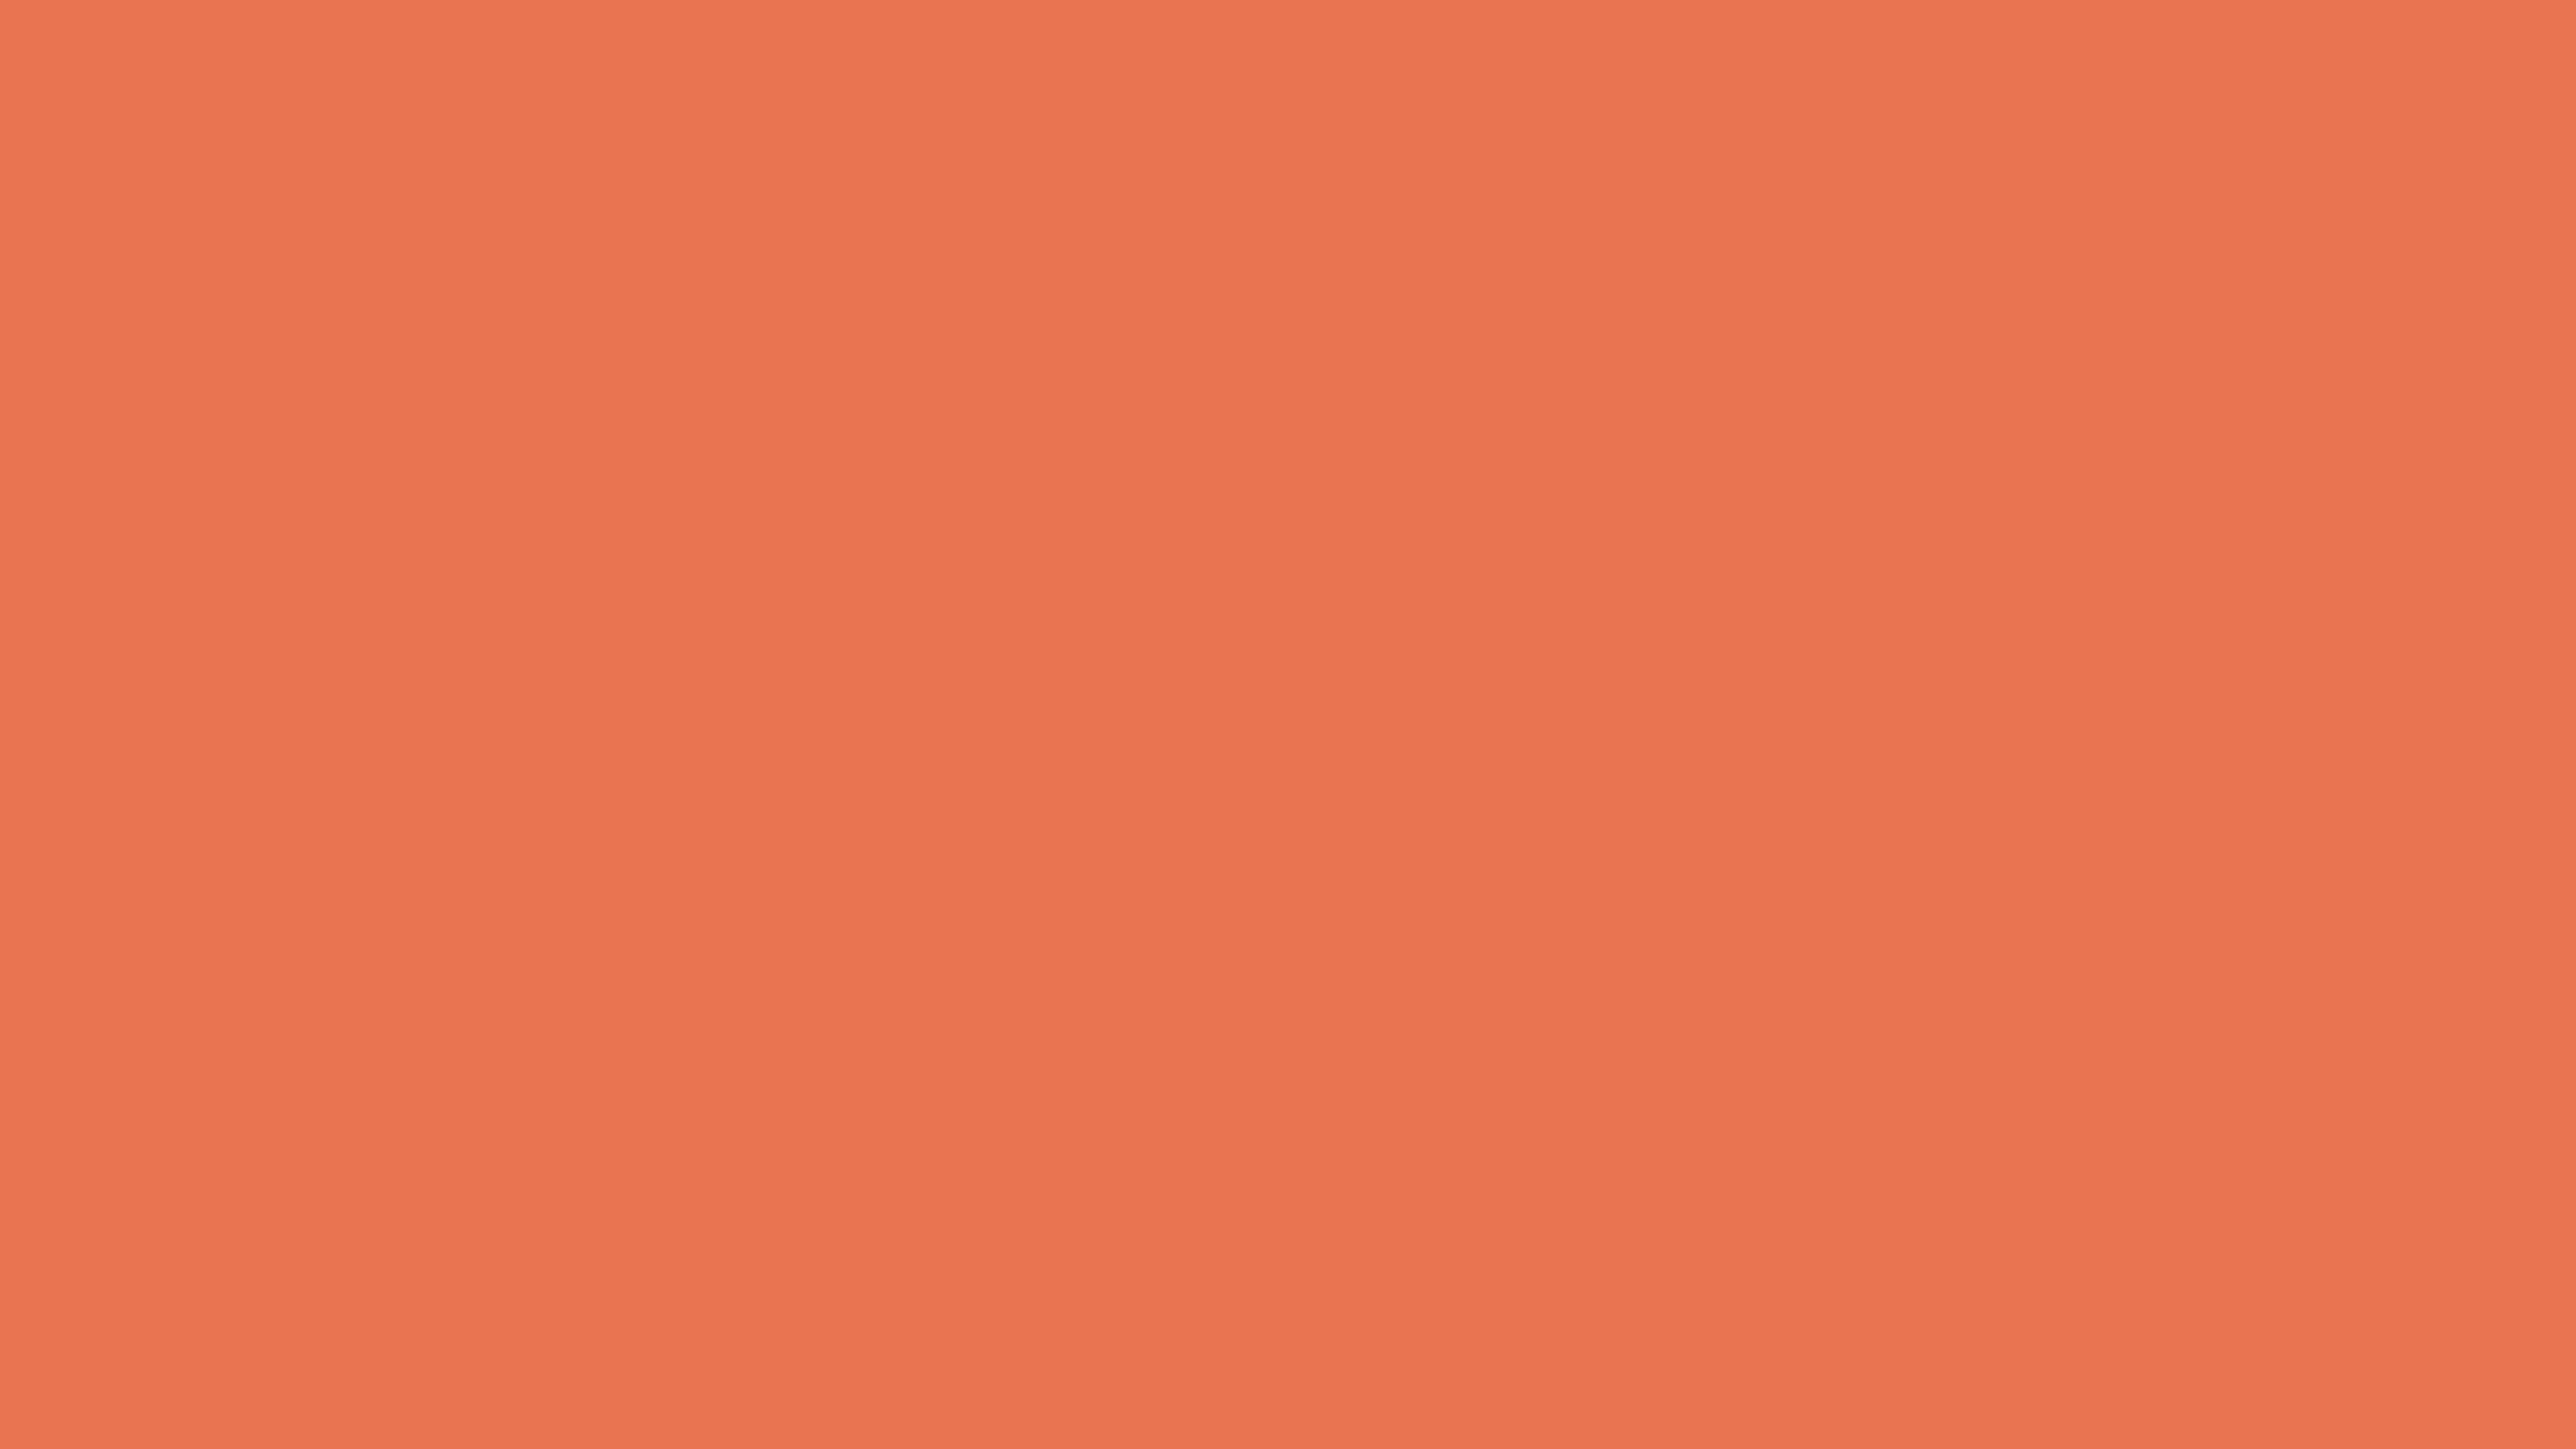 5120x2880 Light Red Ochre Solid Color Background